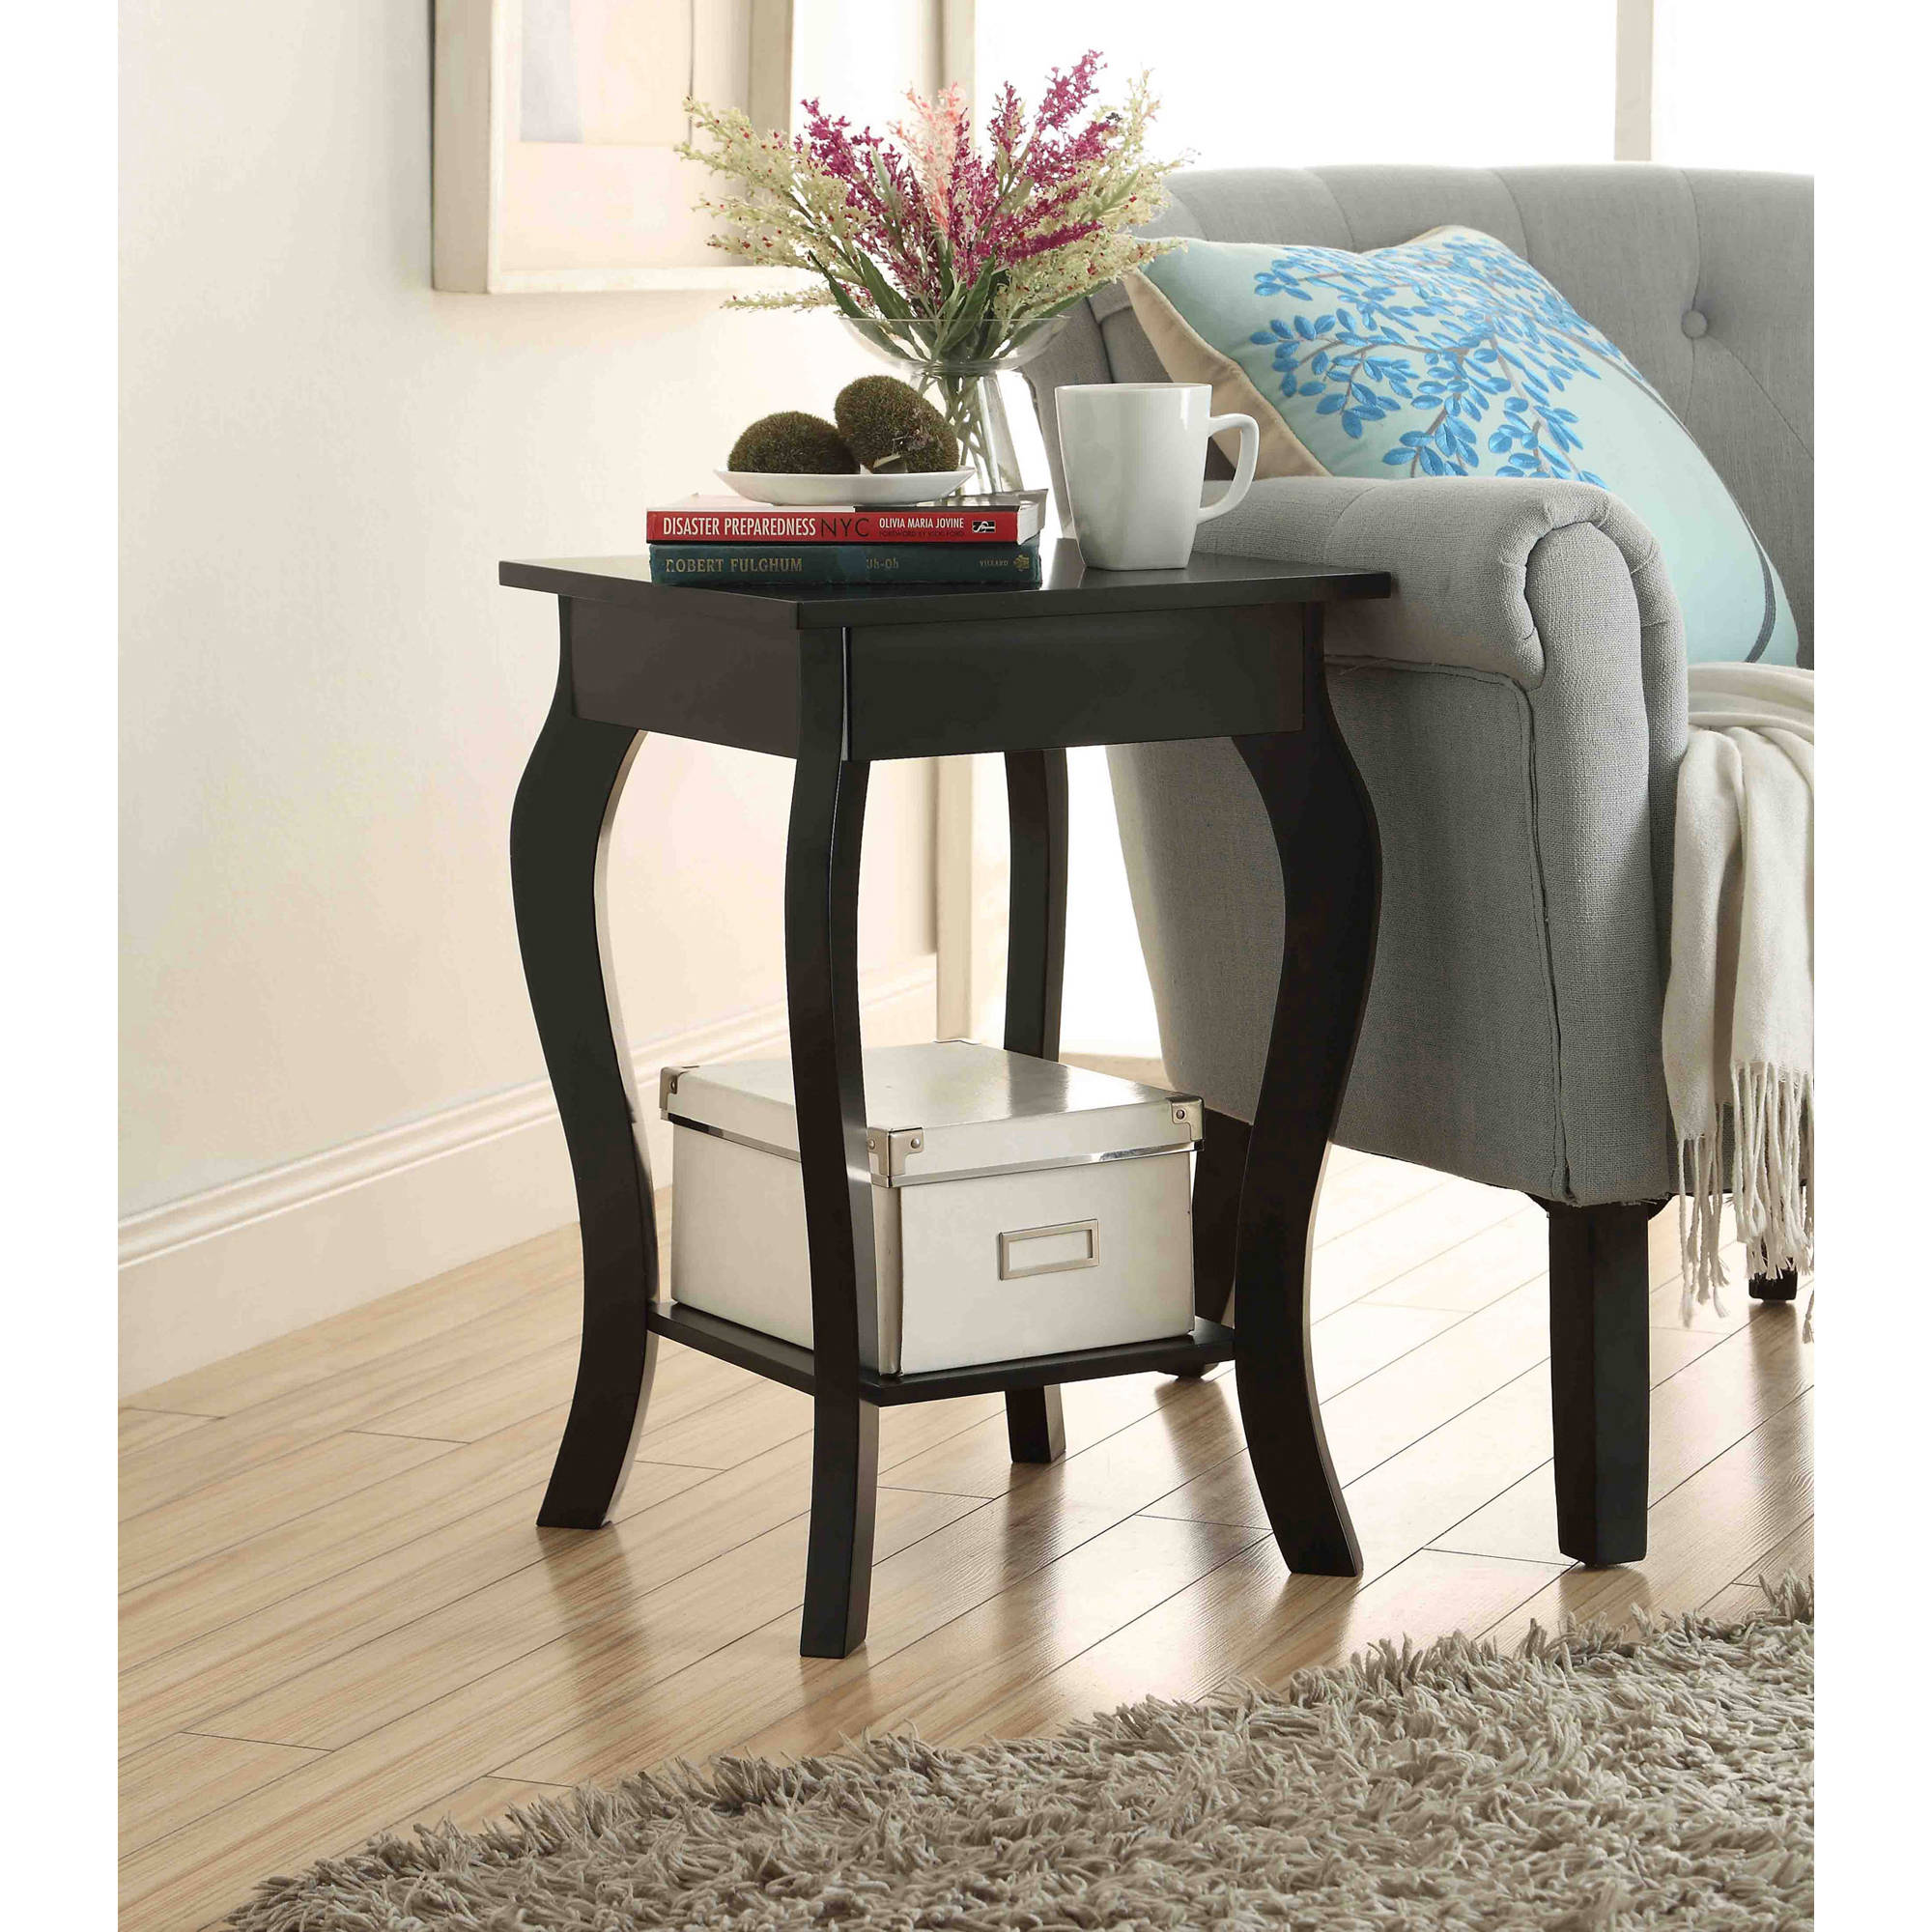 incredible accent coffee table with kitchen fascinating lovable tables round oak wood storage hammered silver side green tiffany lamps center and outdoor umbrella stand weights